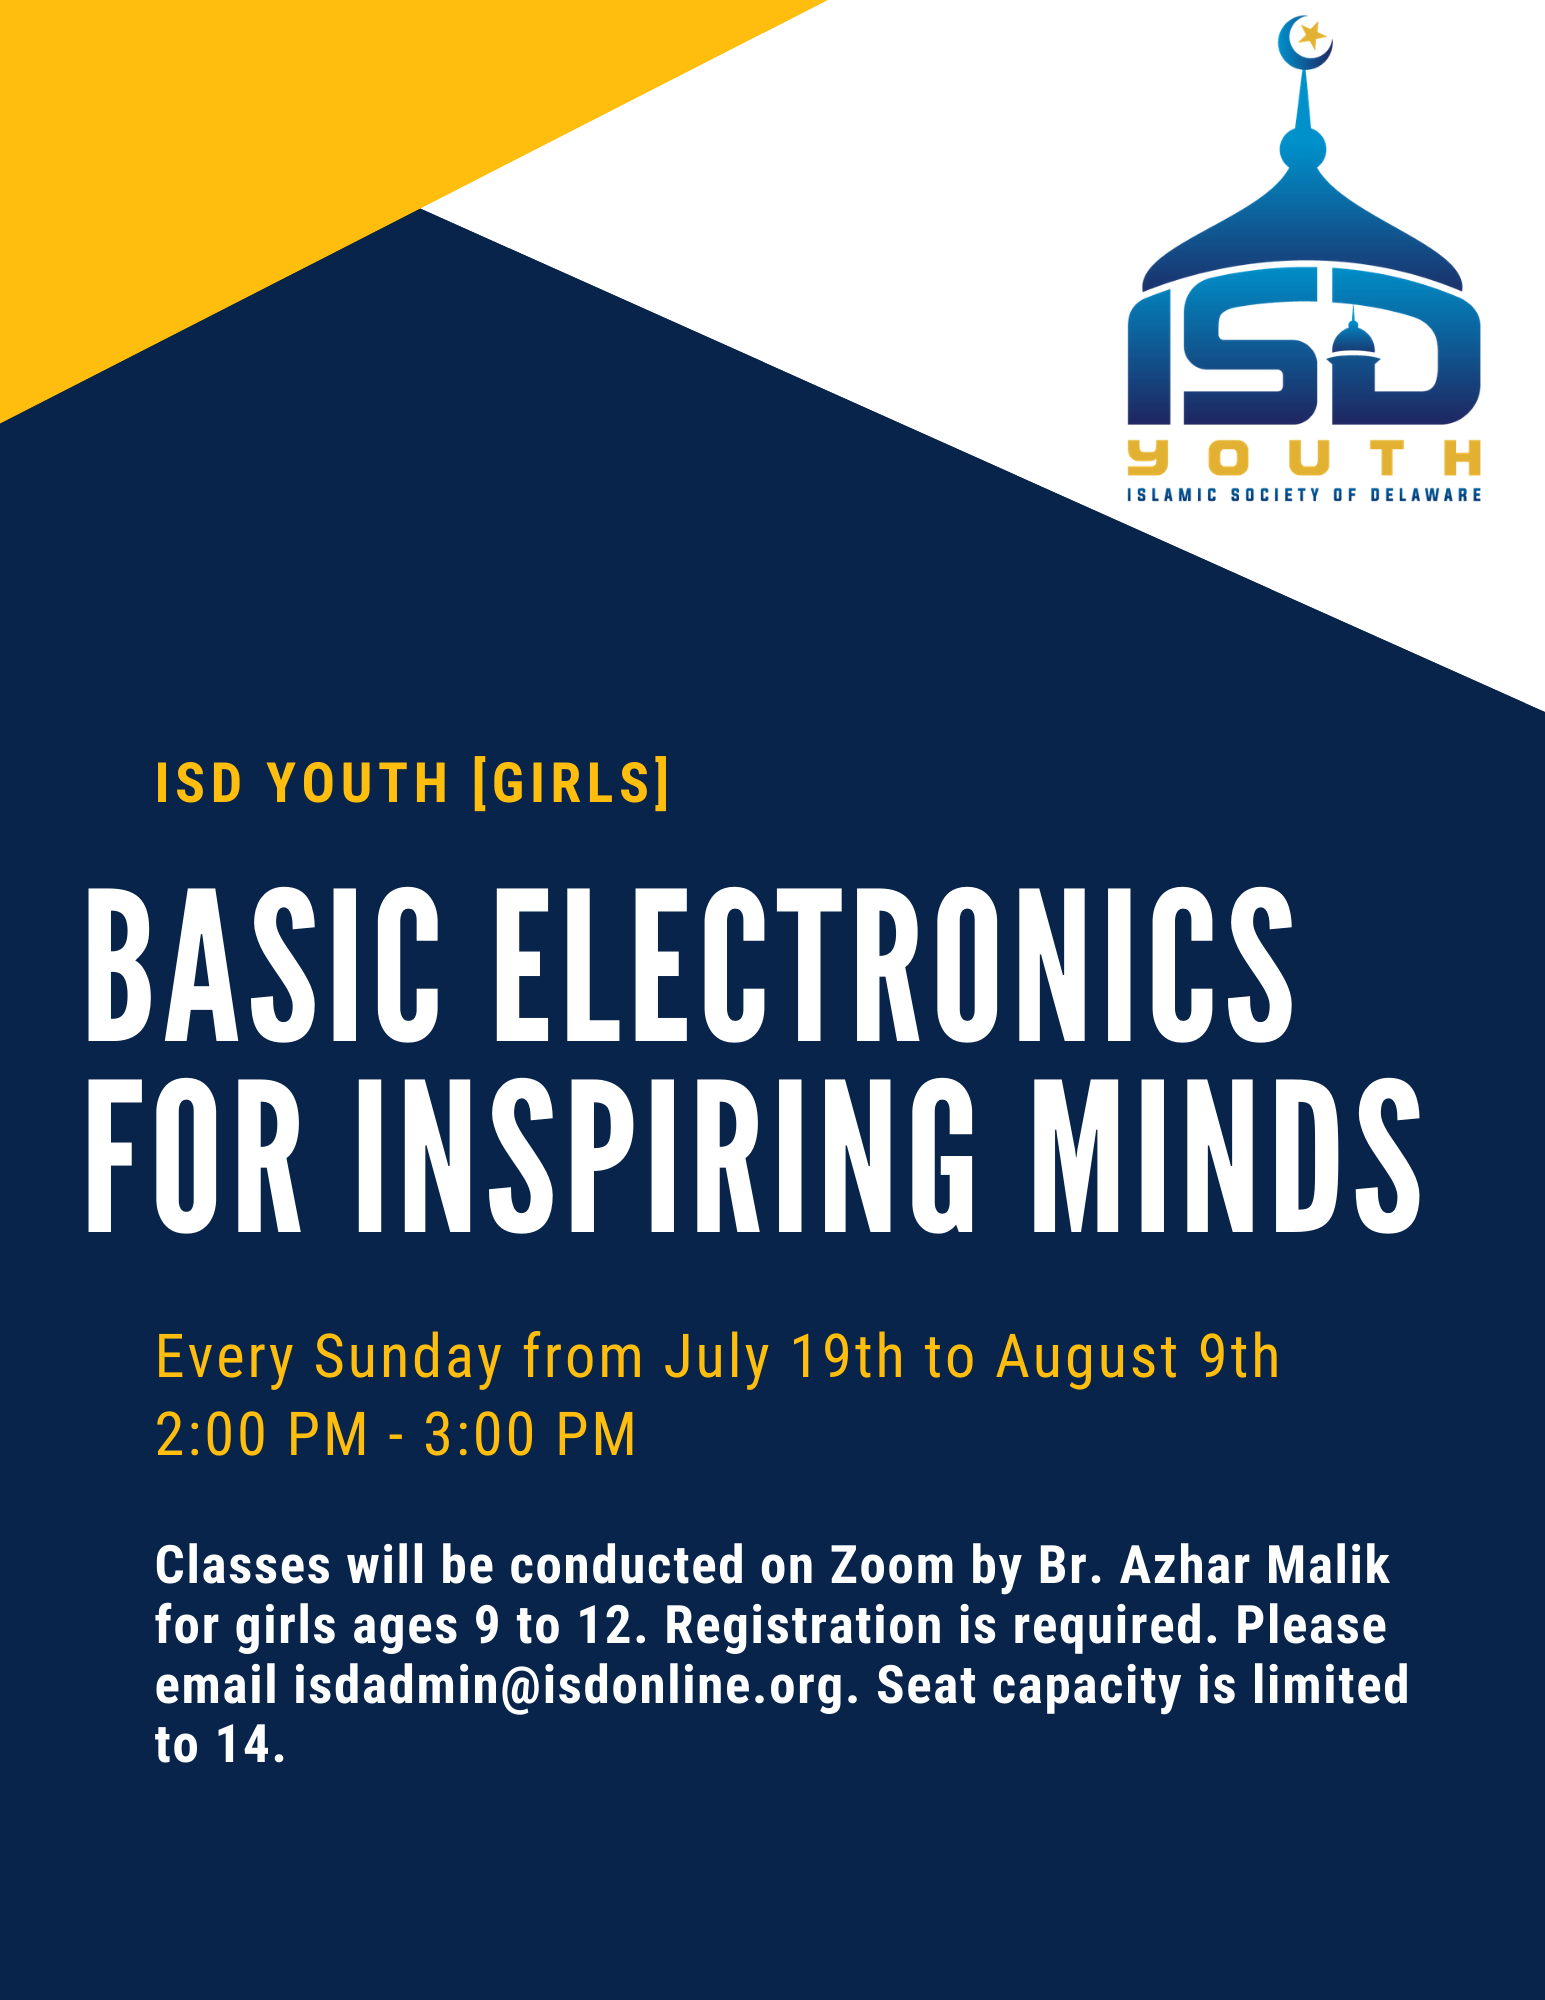 Youth Girls: Basic Electronics for Inspiring Minds